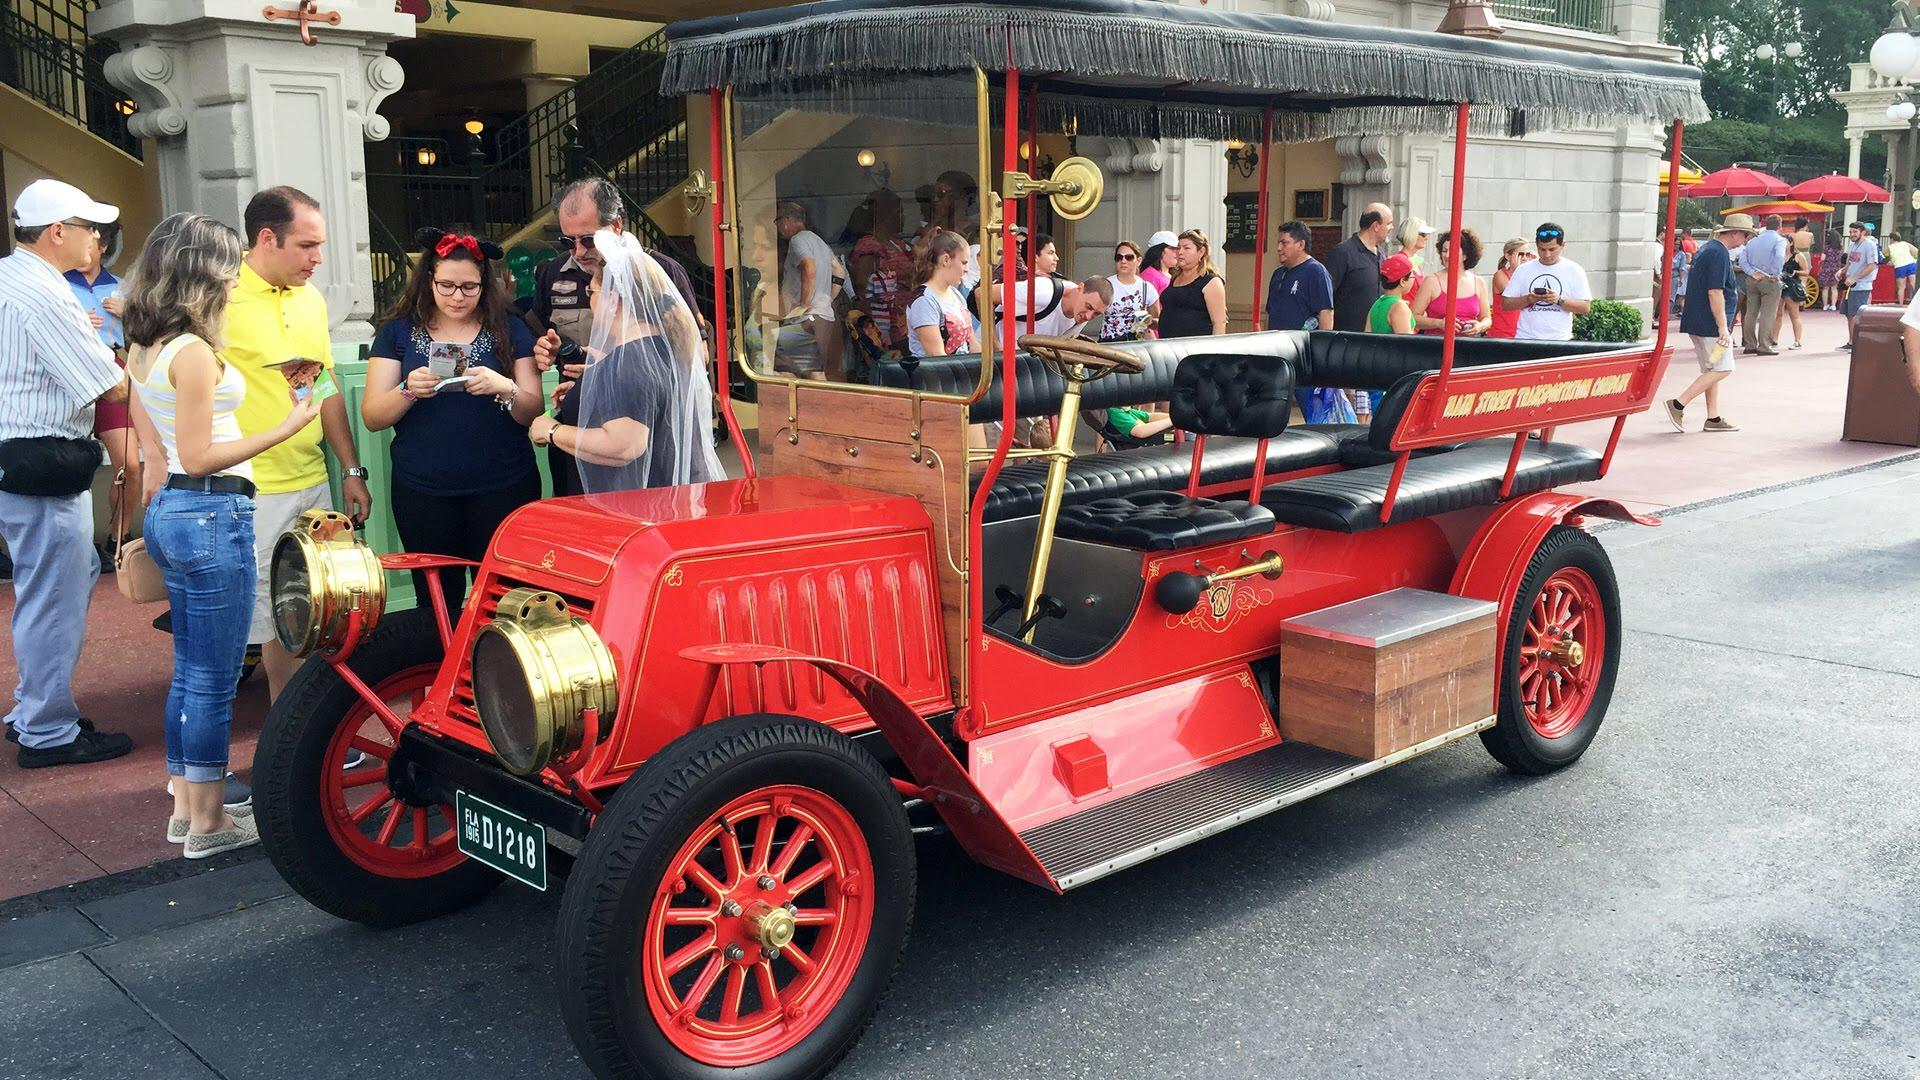 Old Fashioned Cars >> Main Street Vehicles - Orlando Tickets, Hotels, Packages